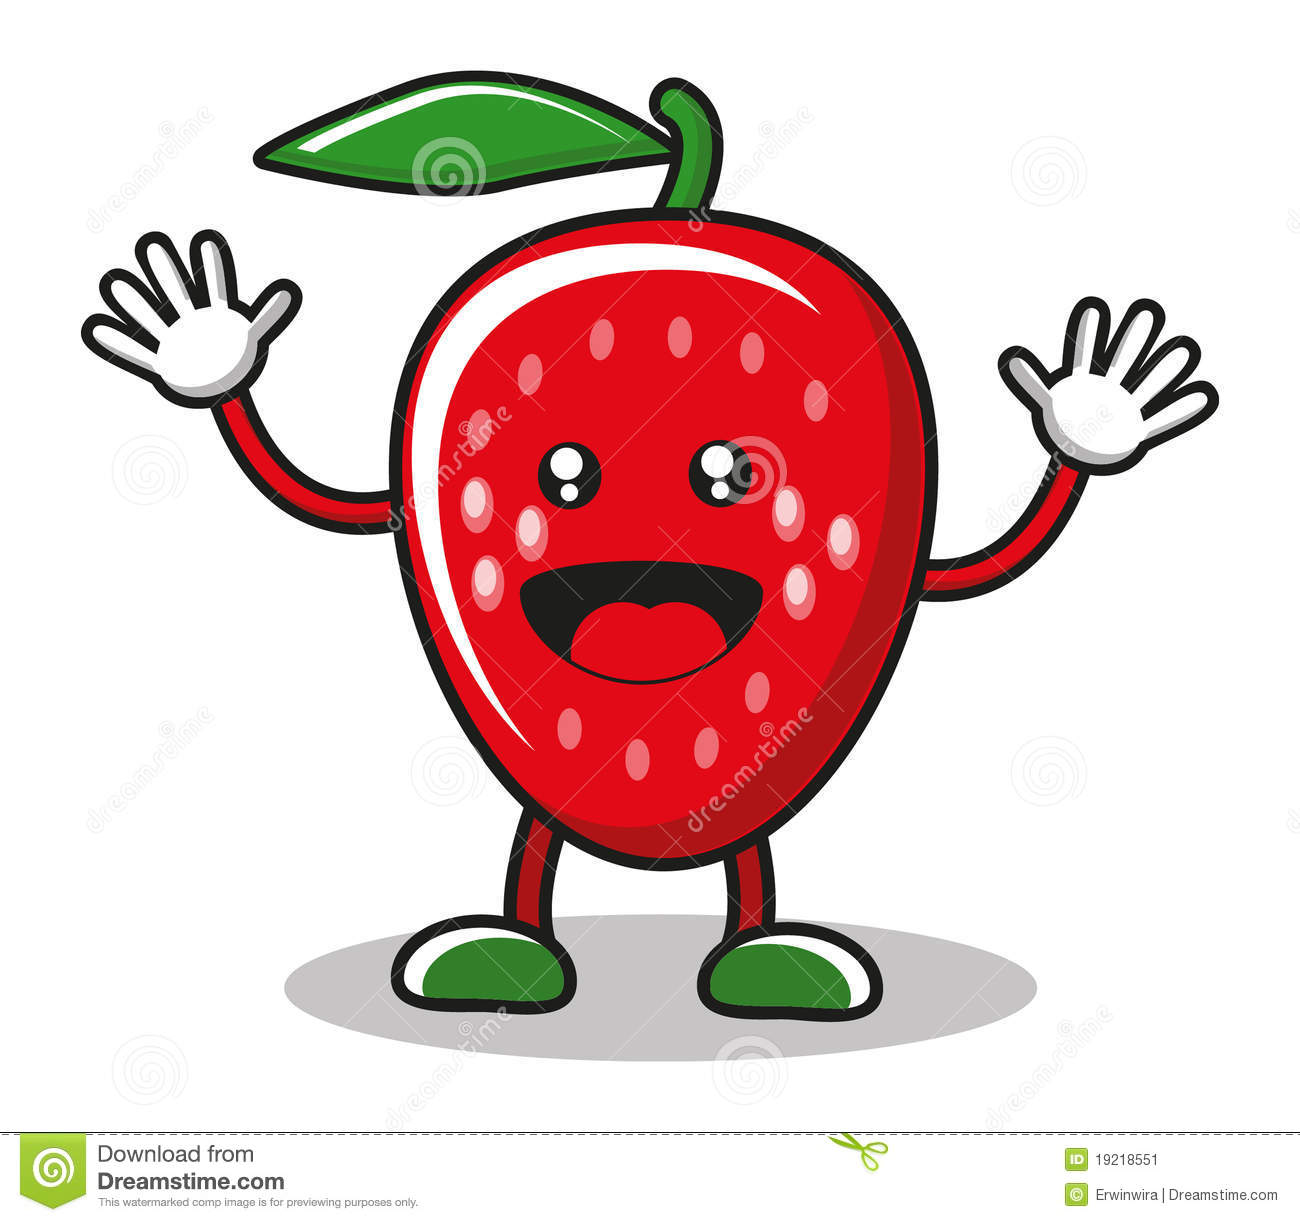 Smiley strawberry stock vector. Illustration of health ...